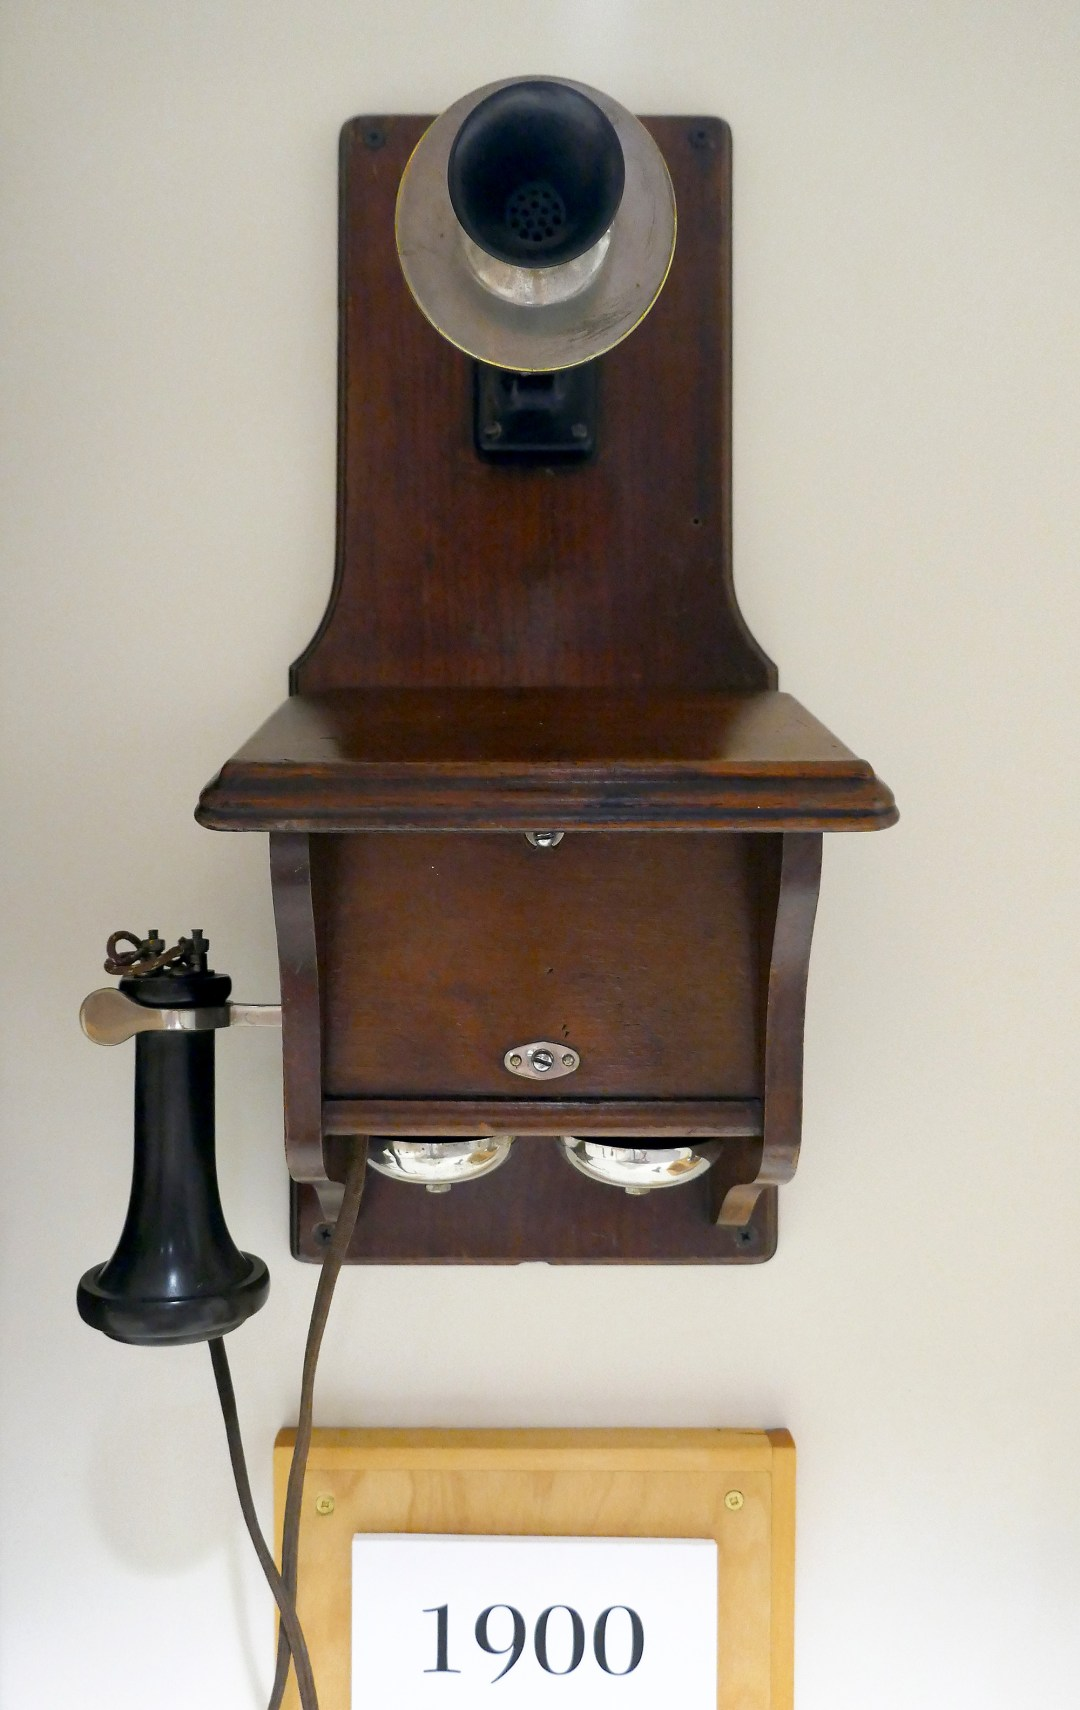 Telephone at Alexander Graham Bell Museum